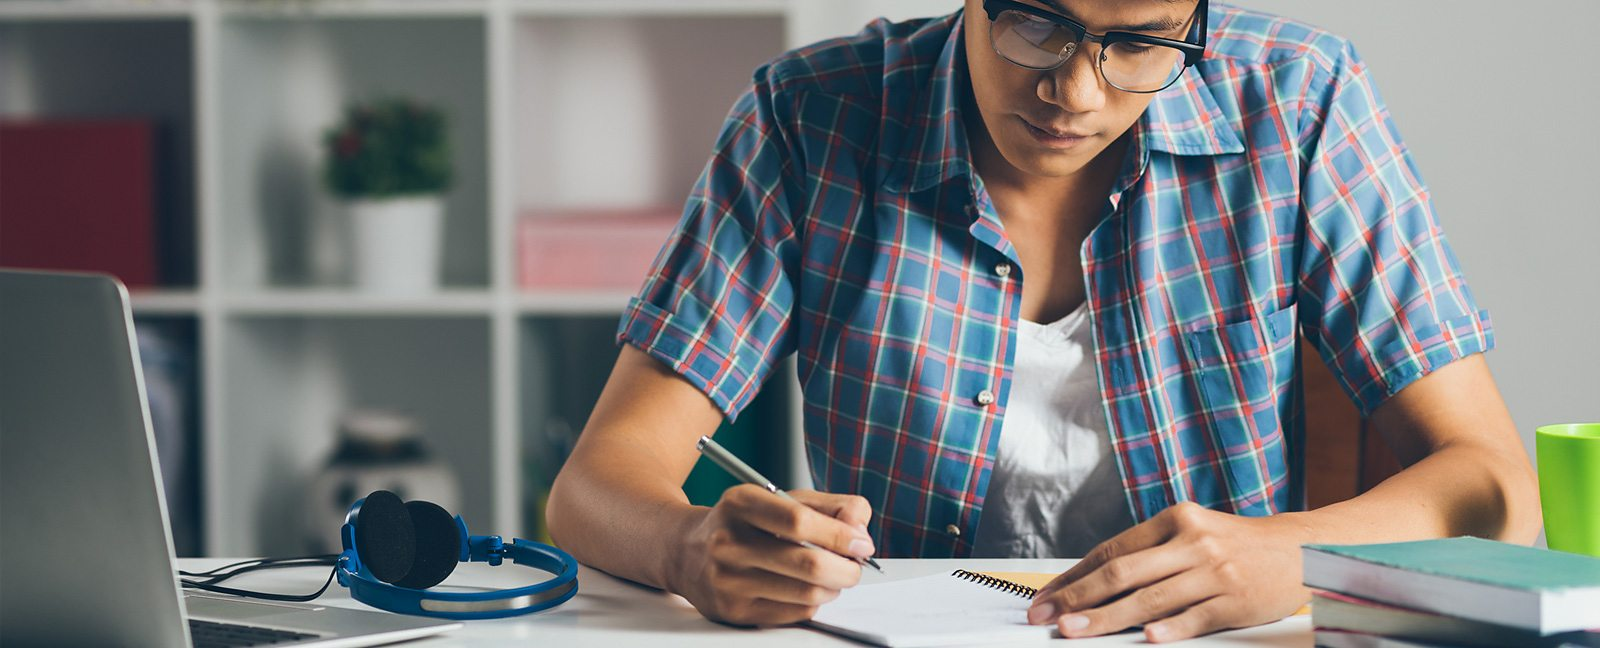 BBC Learning English - Go The Distance: Academic Writing – Essay on